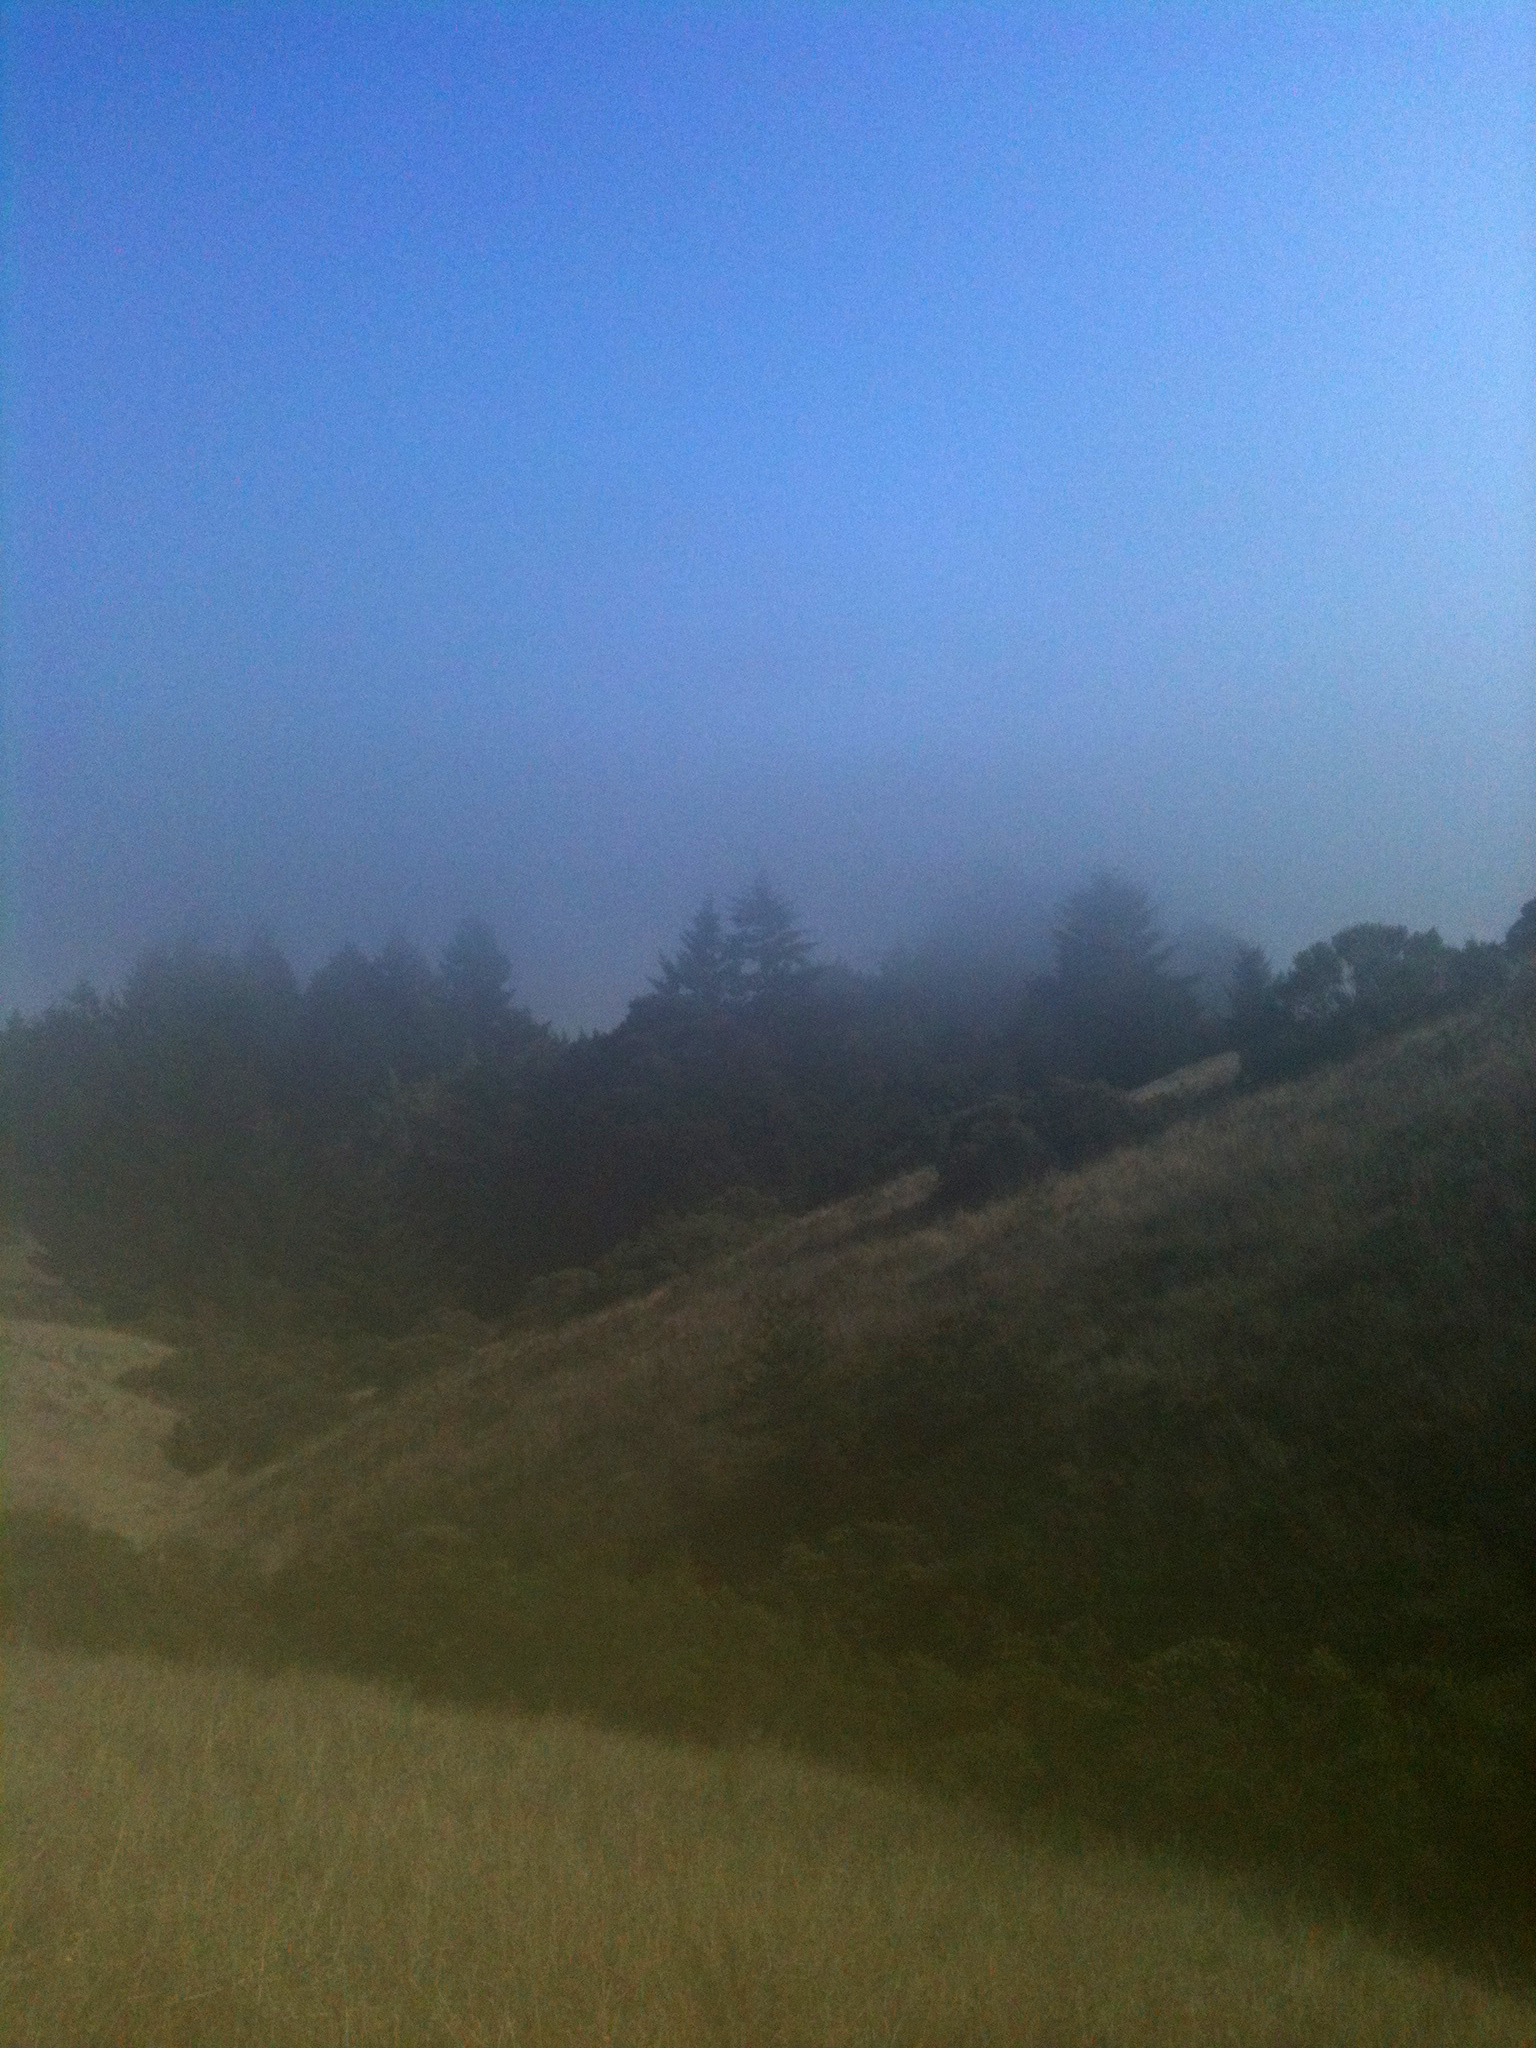 This part of the trail wove in and out of the fog.